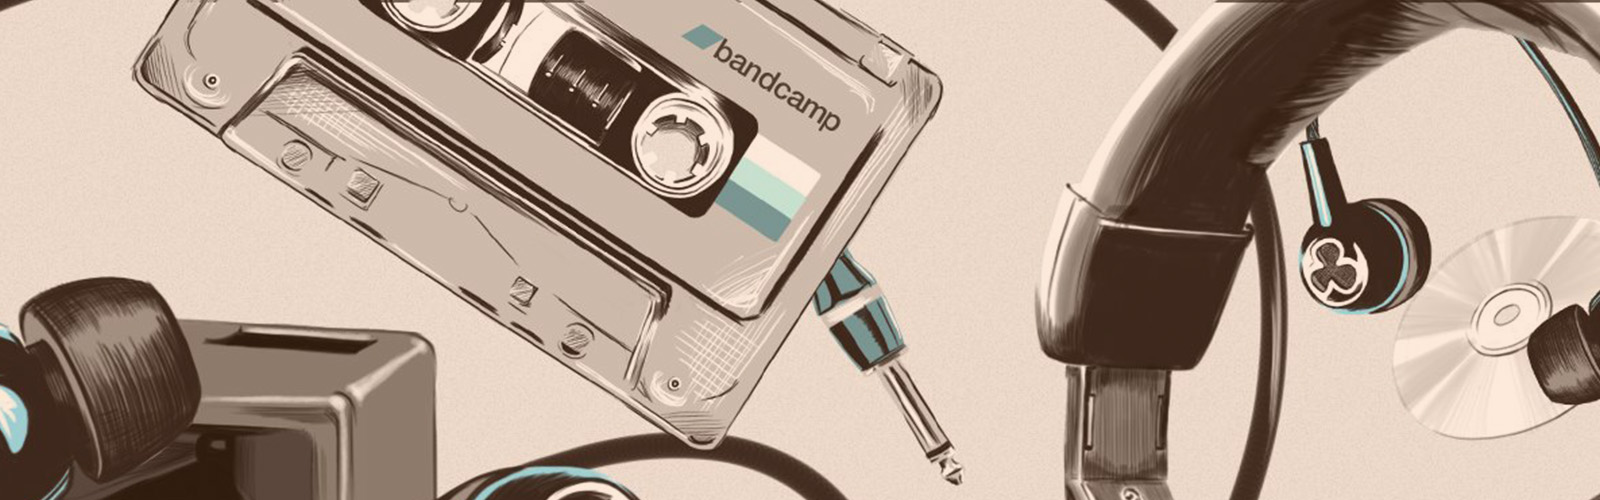 Tips for enjoying Bandcamp to the fullest